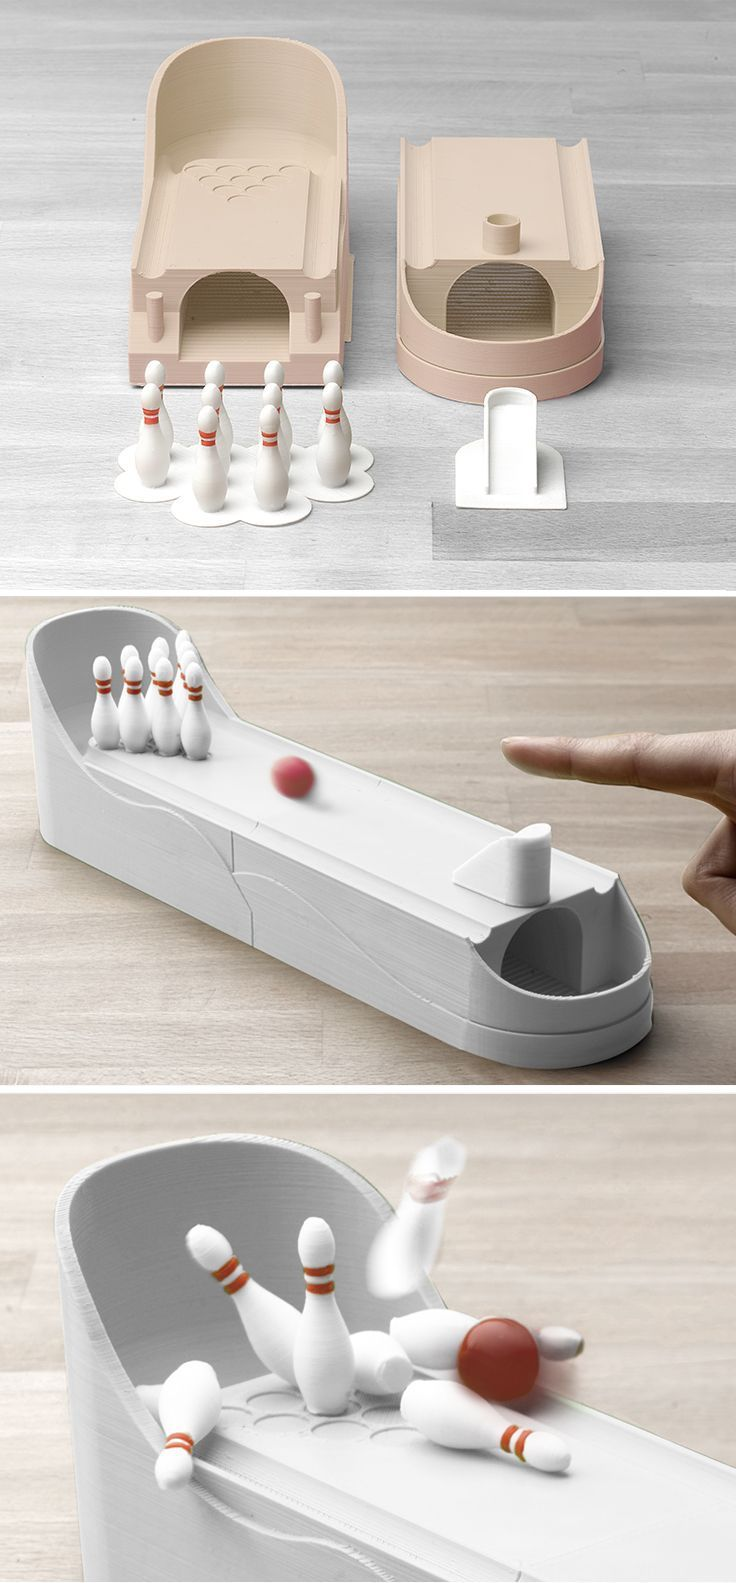 3D Printed Bowling by Matthijs Kok ️No Pin Limits ️More